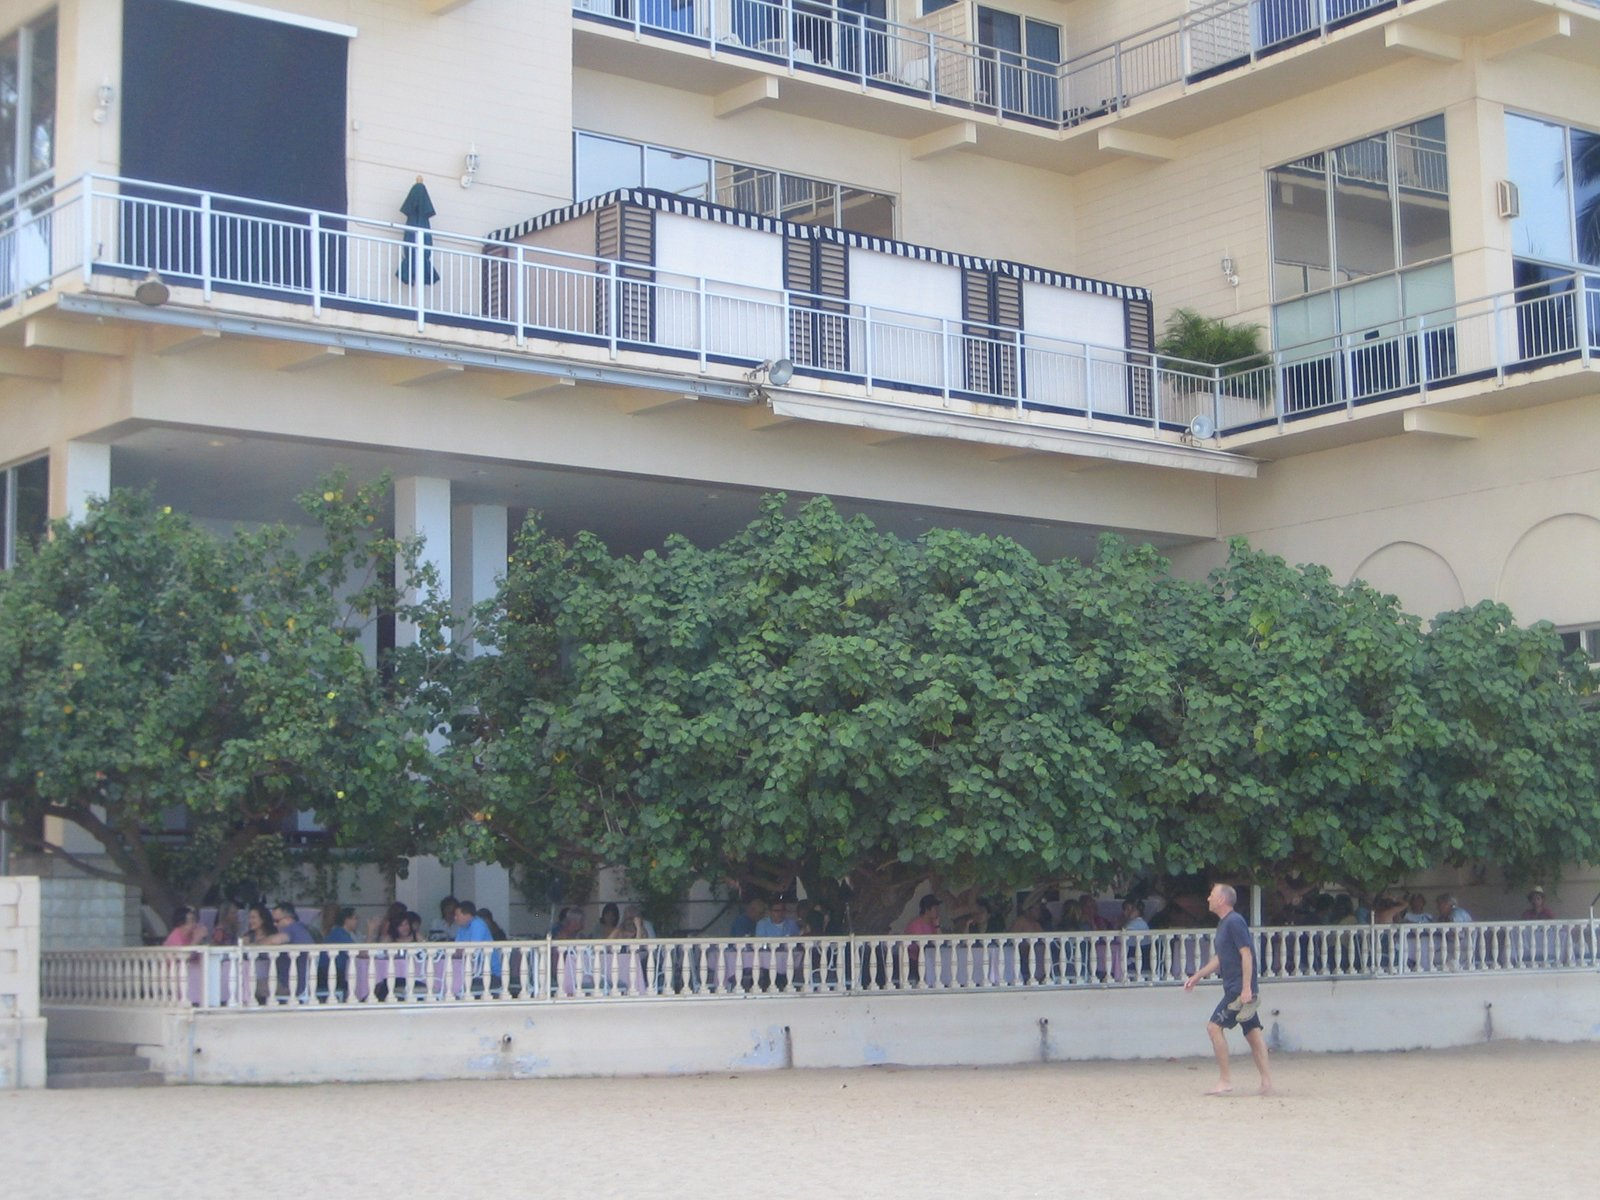 Considering how lovely the view was from the restaurant, I was surprised at how wholly the tree covers the place when viewed from the beach.  Photo 3 of 5 in Hau Tree Lanai in Honolulu